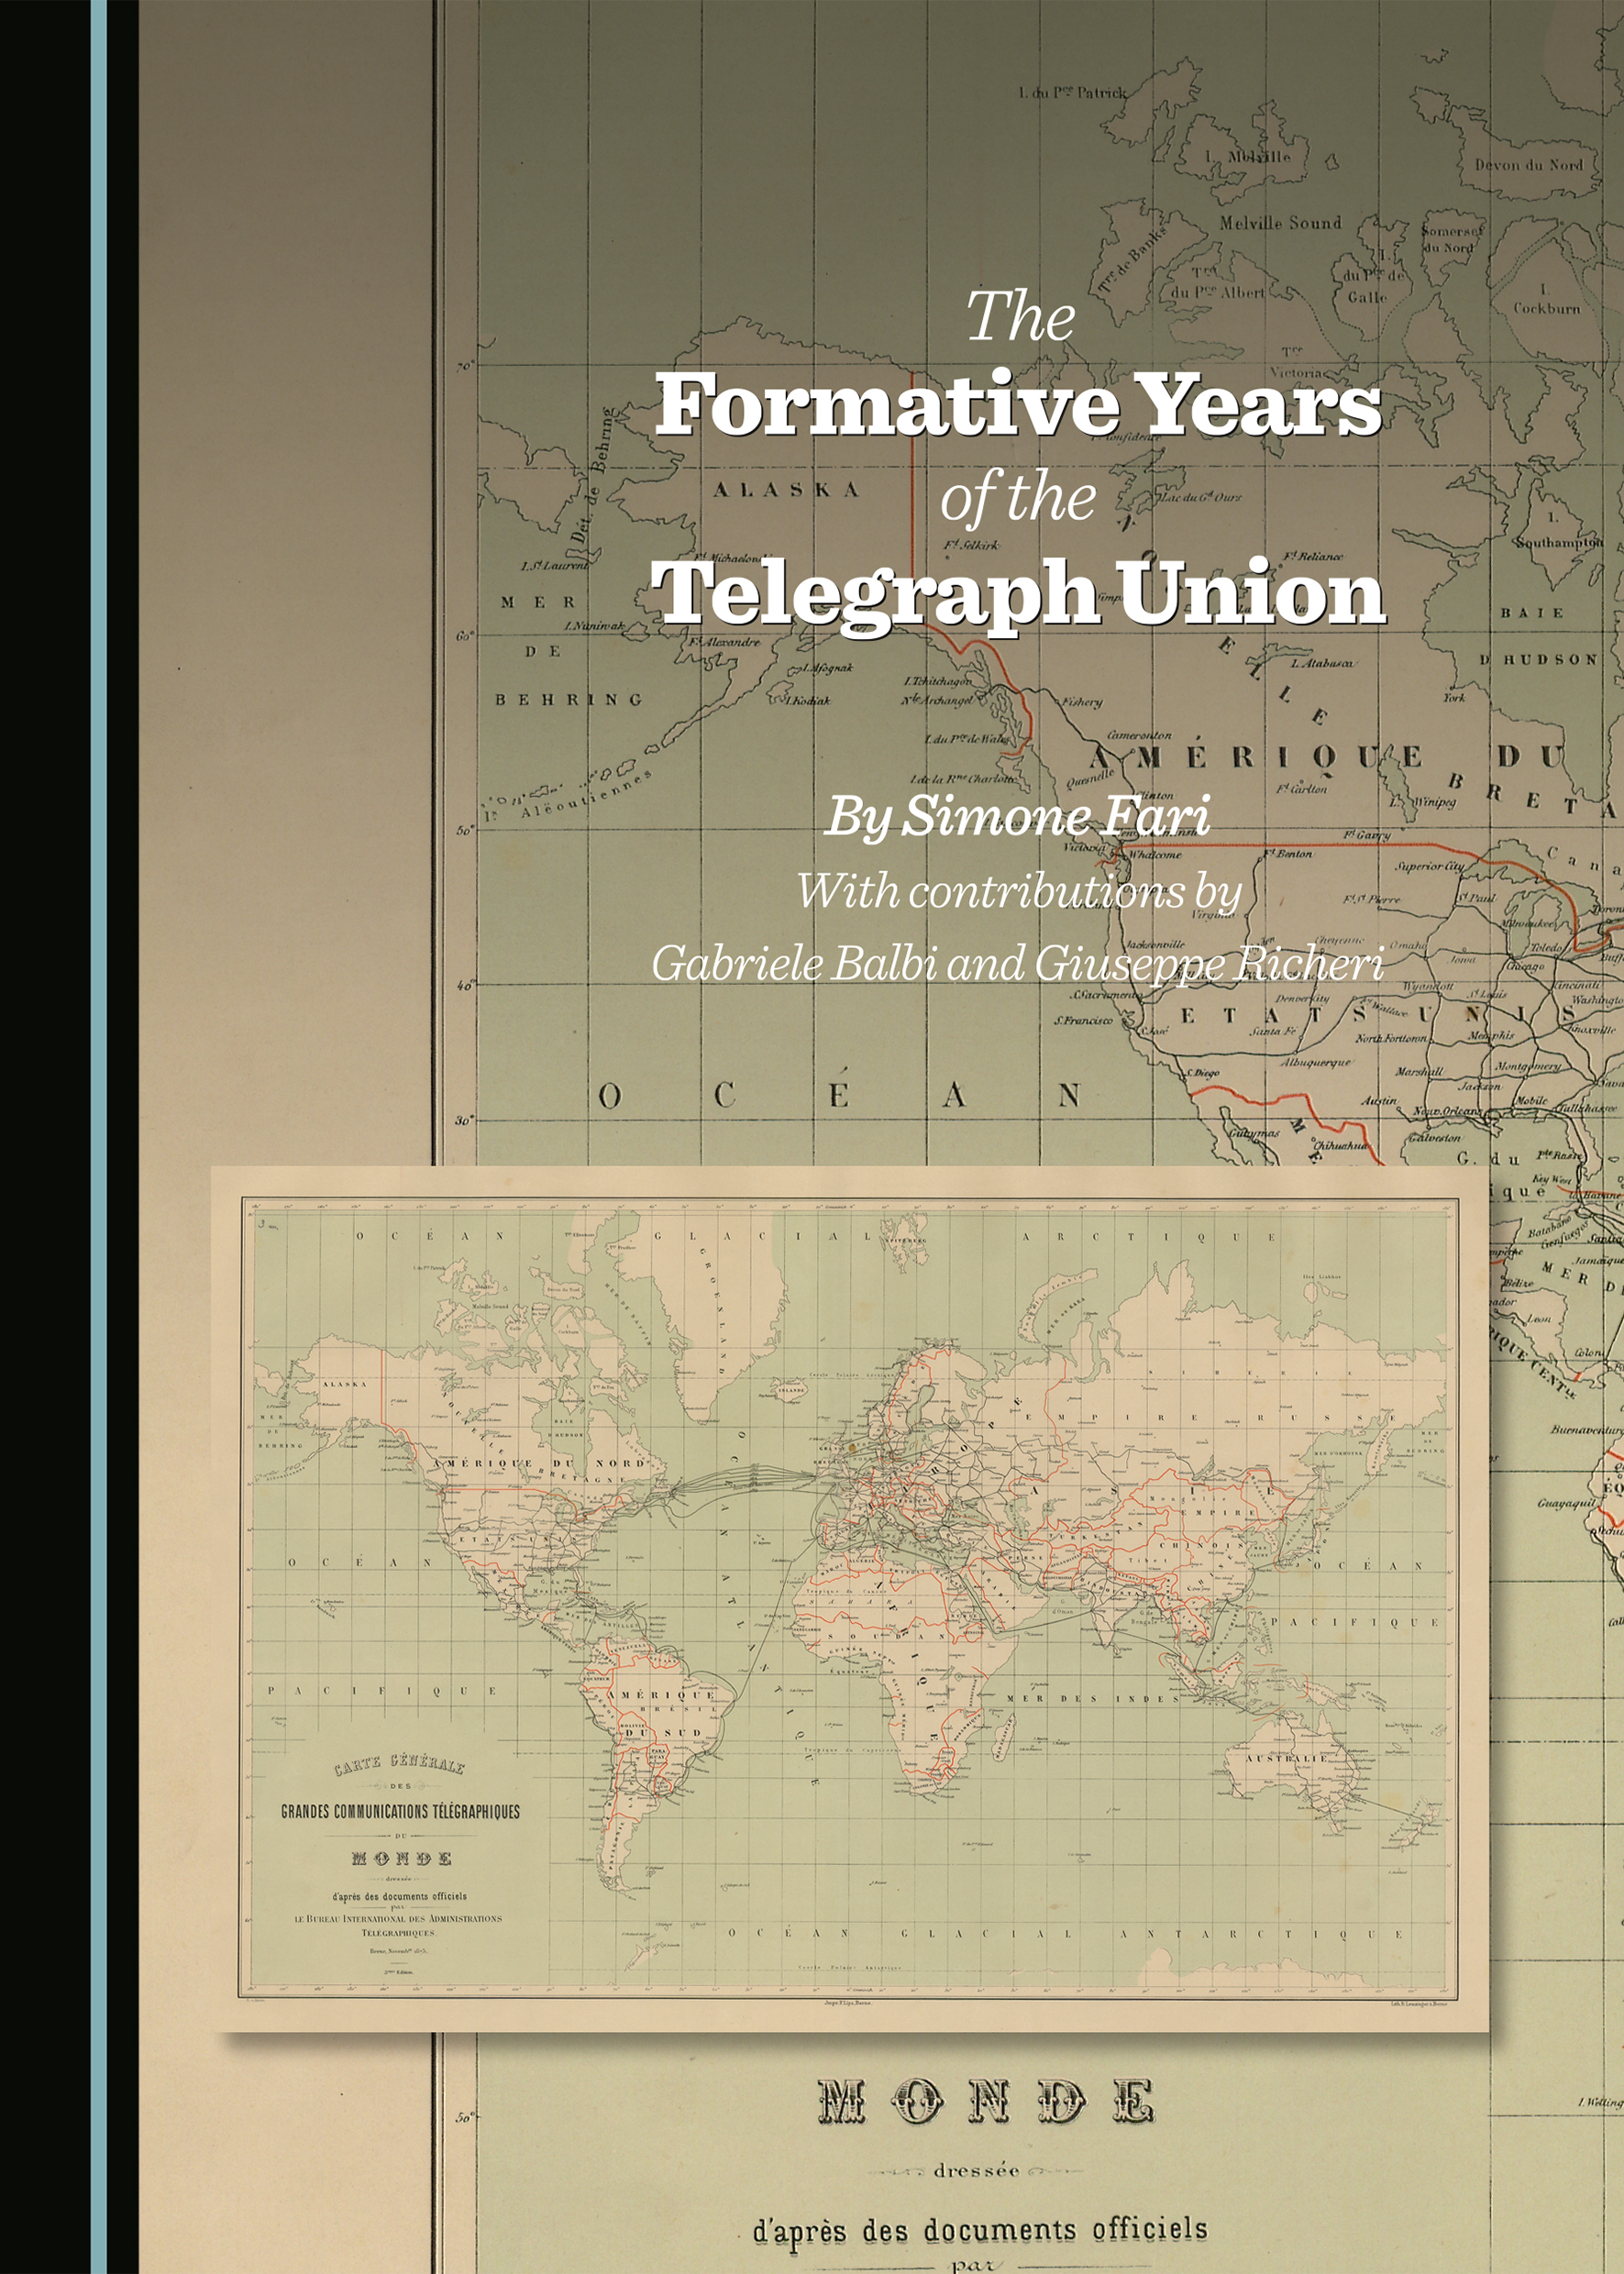 The Formative Years of the Telegraph Union